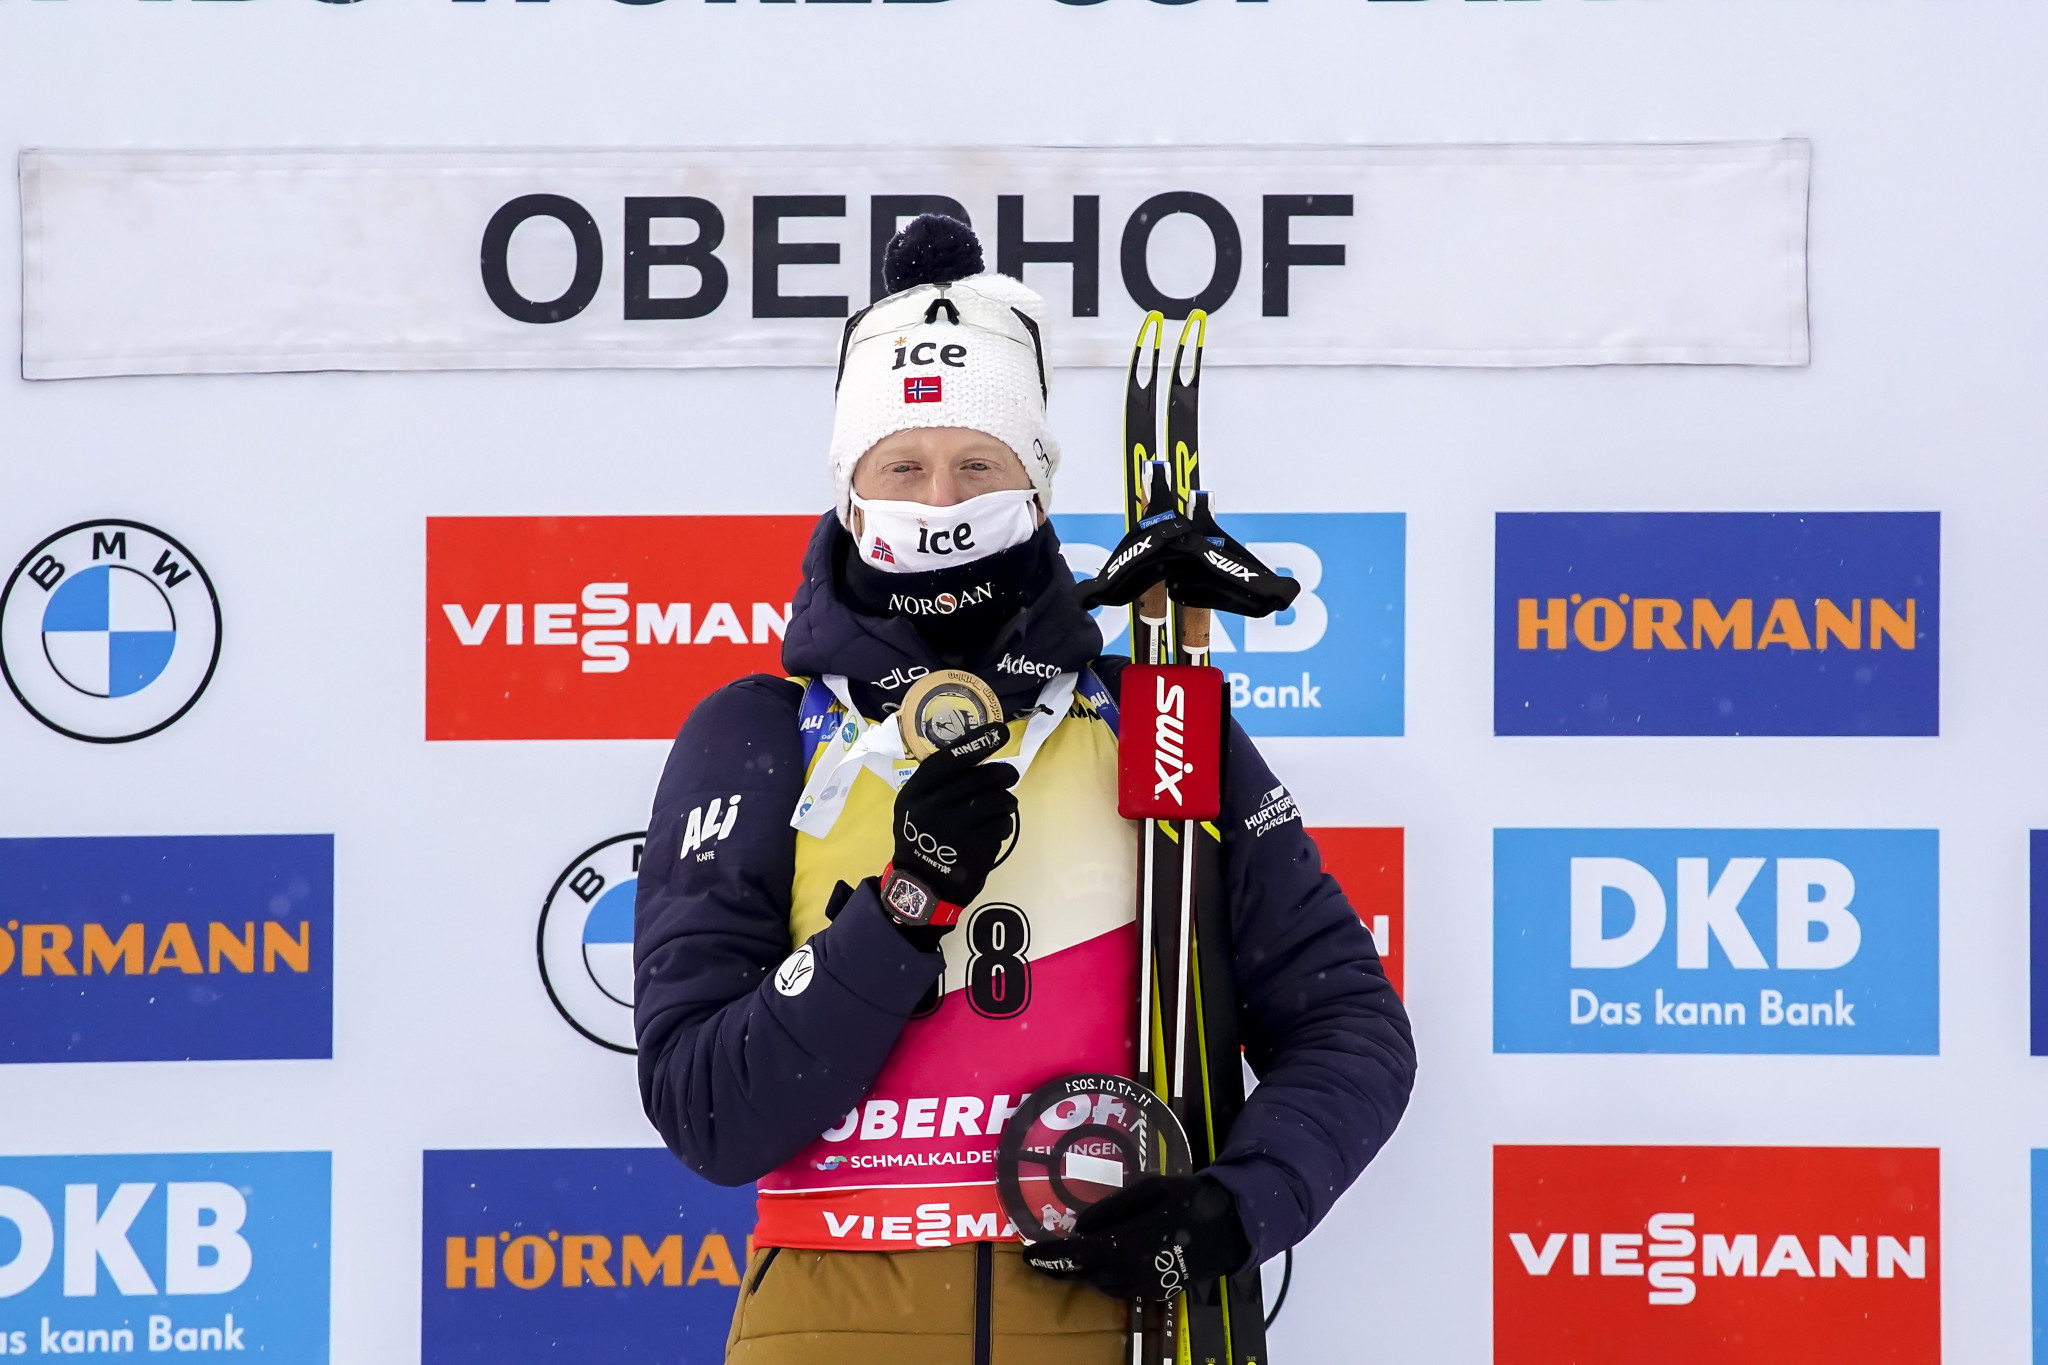 Johannes Thingnes Bø beat Norwegian rival Sturla Holm Lægreid to win the 10km sprint in Oberhof ©Getty Images